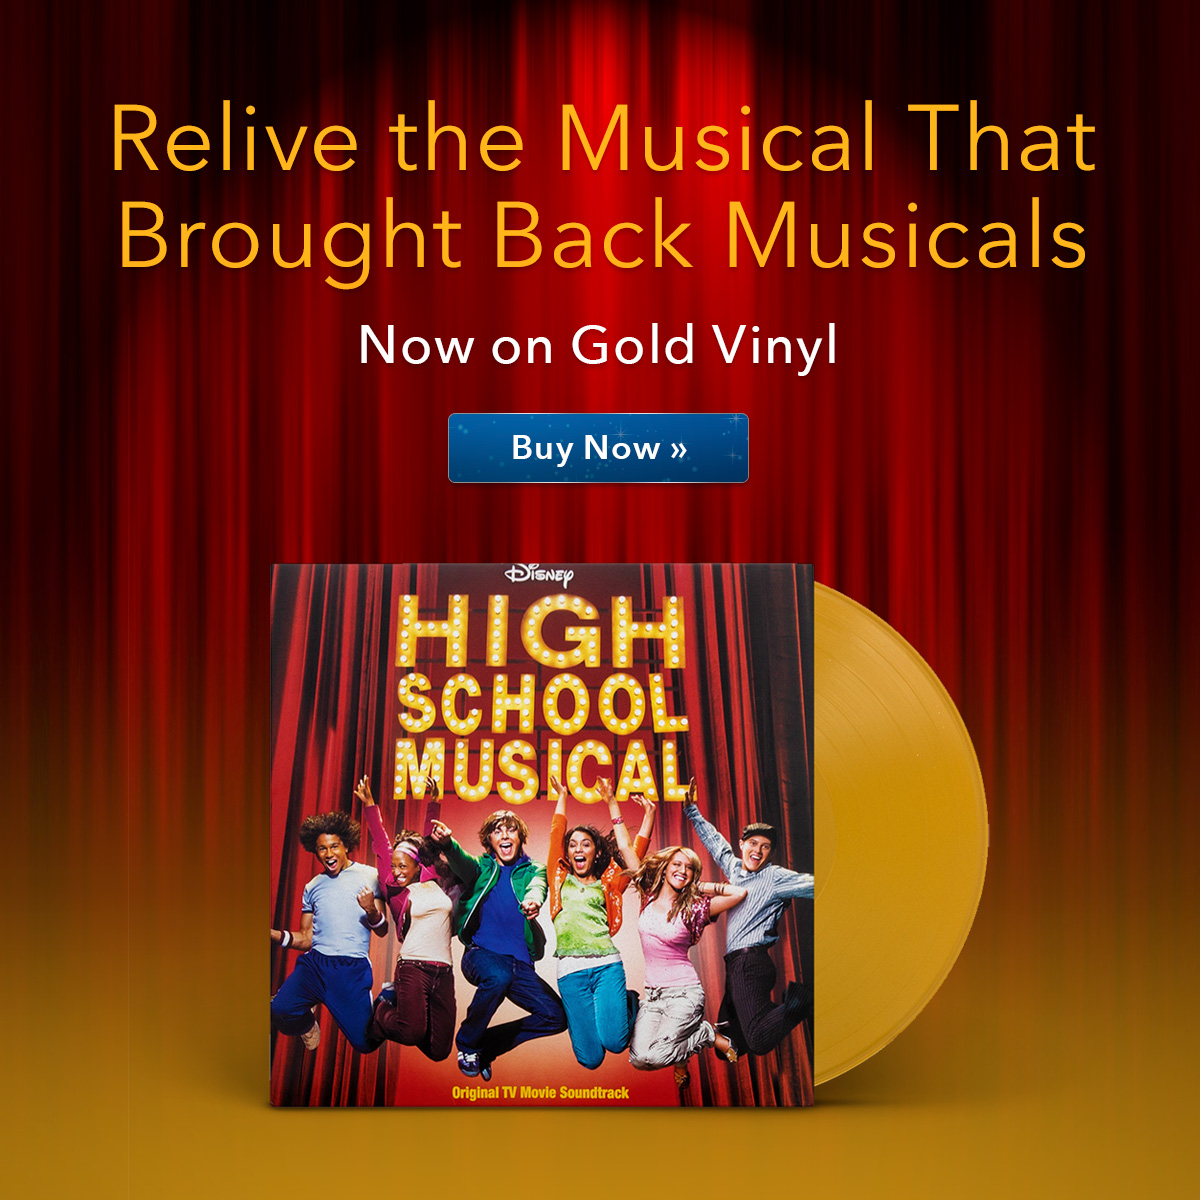 High School Musical: Now On Gold Vinyl!